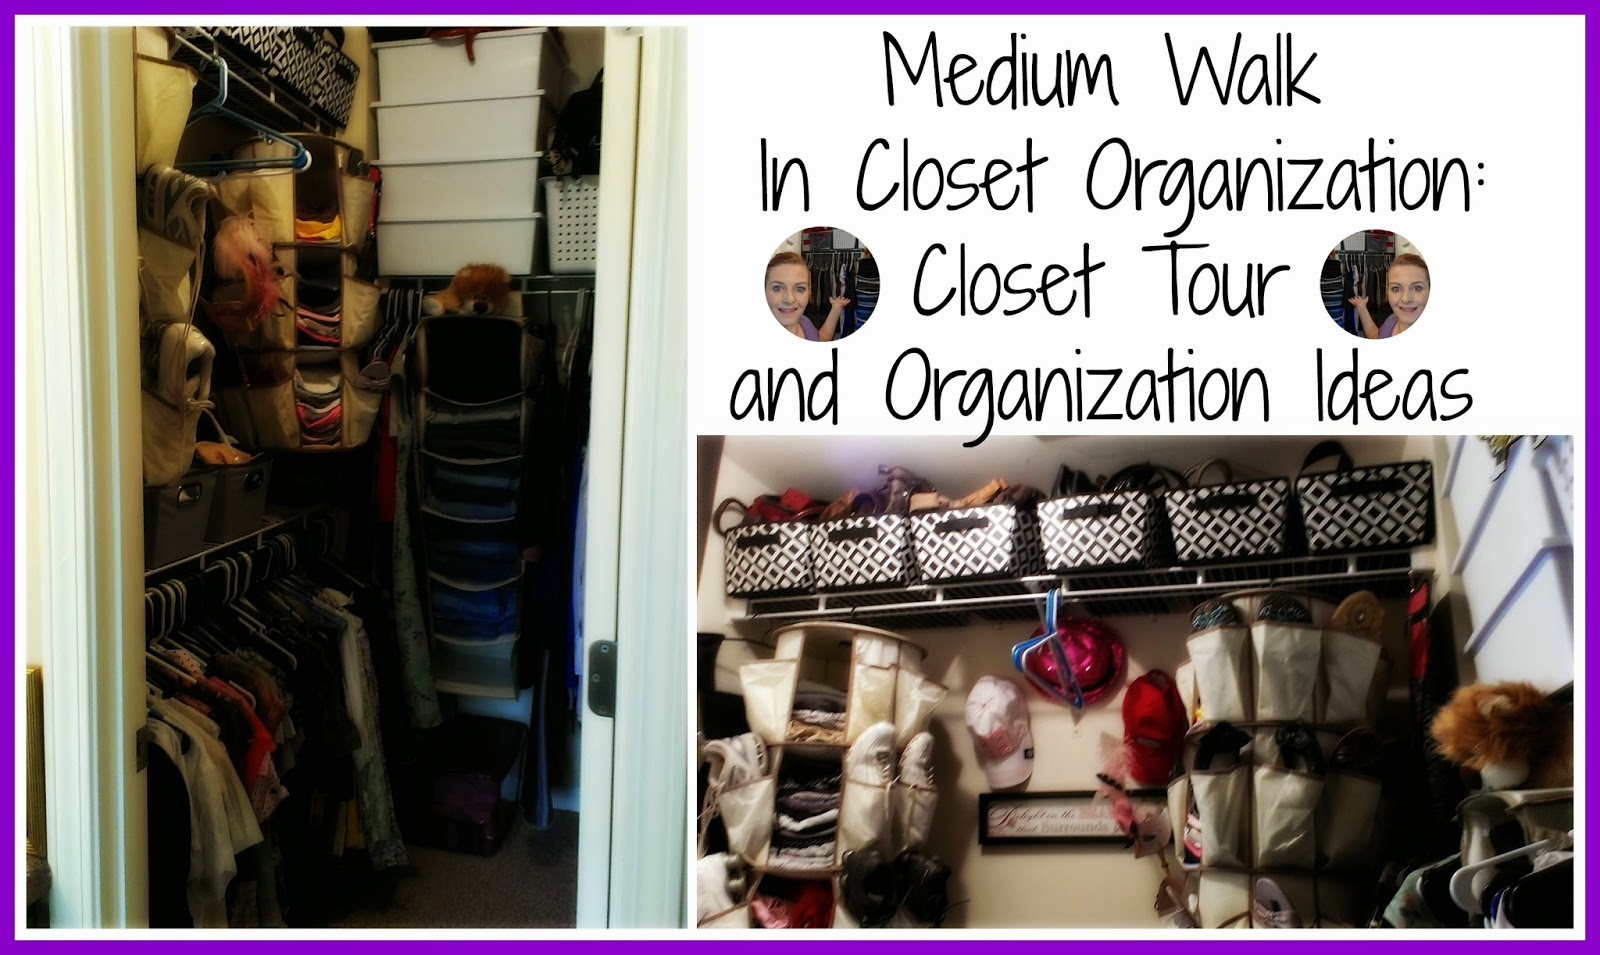 I Am Back Today With A Closet Organizational Video. I Have A Medium Size  Walk In Closet Which Was Just Not Working For Me So I Pretty Much Changed  Almost ...